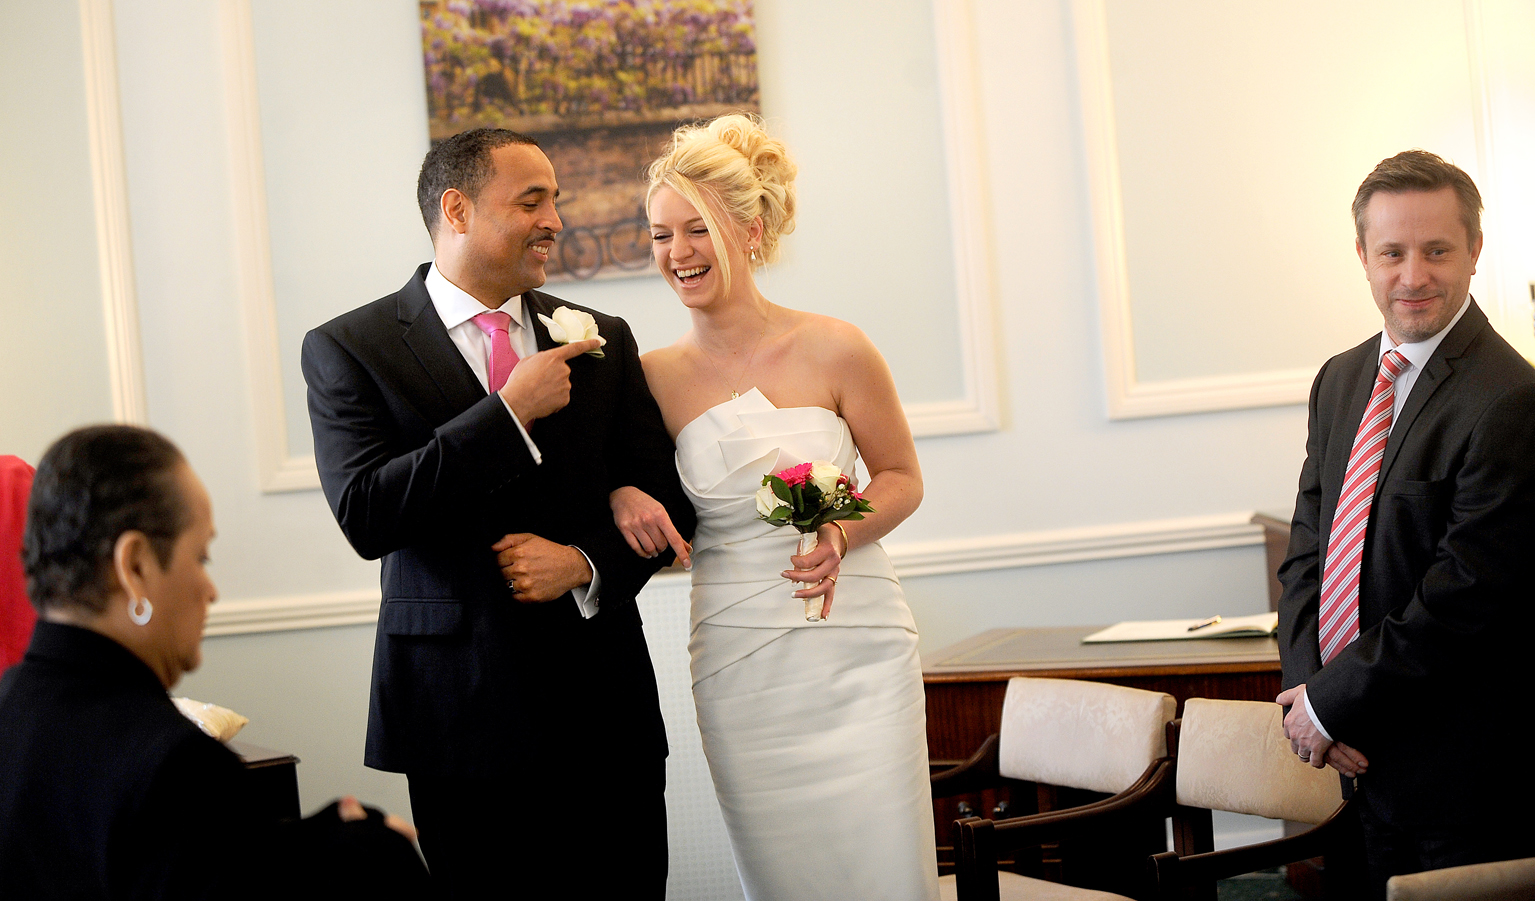 Lymington registry office wedding